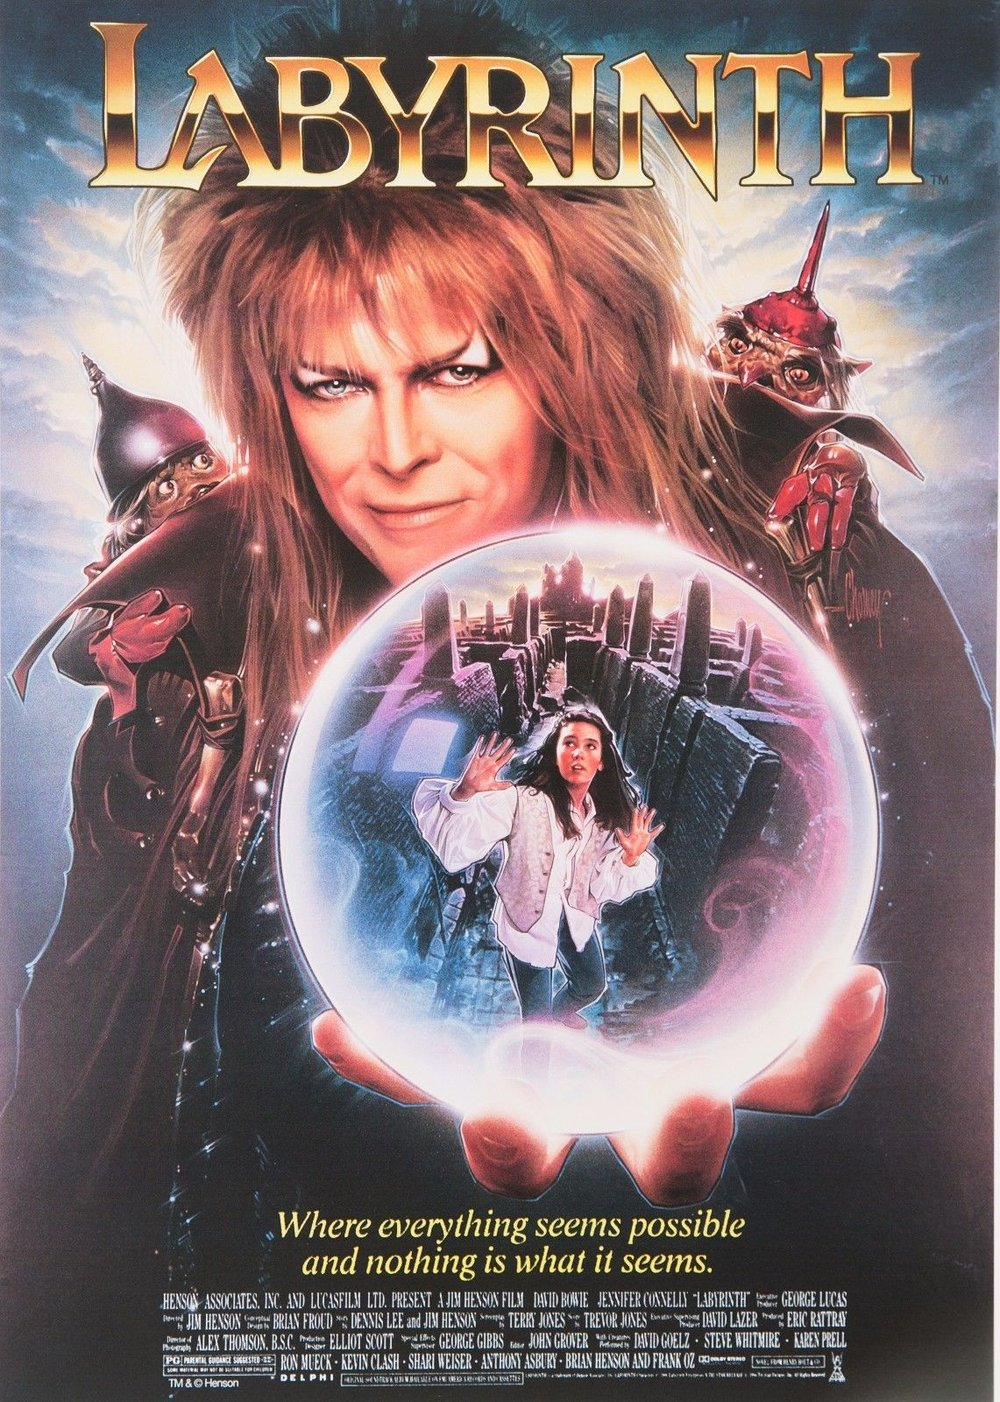 LABYRINTH-WITH-DAVID-BOWIE-LIMITED-EDITION-MOVIE-REEL-DISPLAY-172248233189-2.jpg